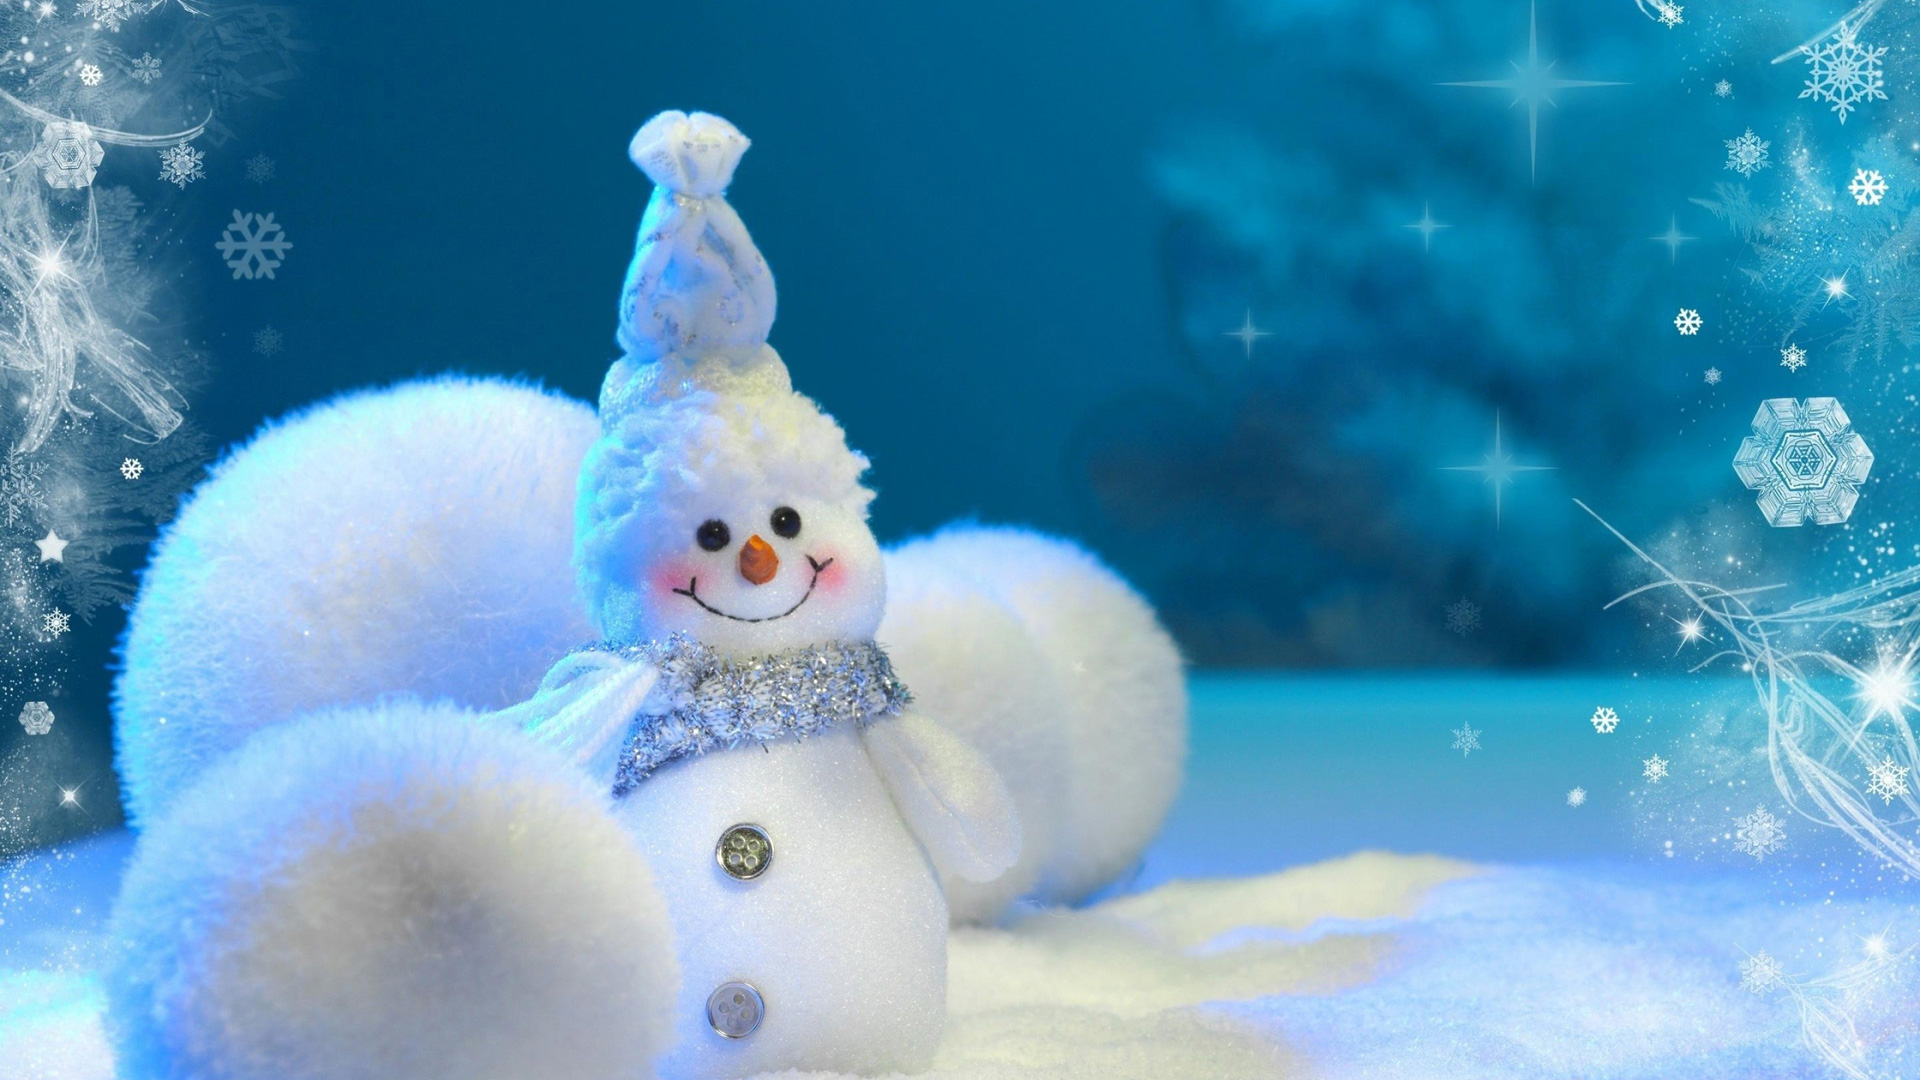 And Winter Full HD Wallpapers download 1080p desktop backgrounds 1920x1080